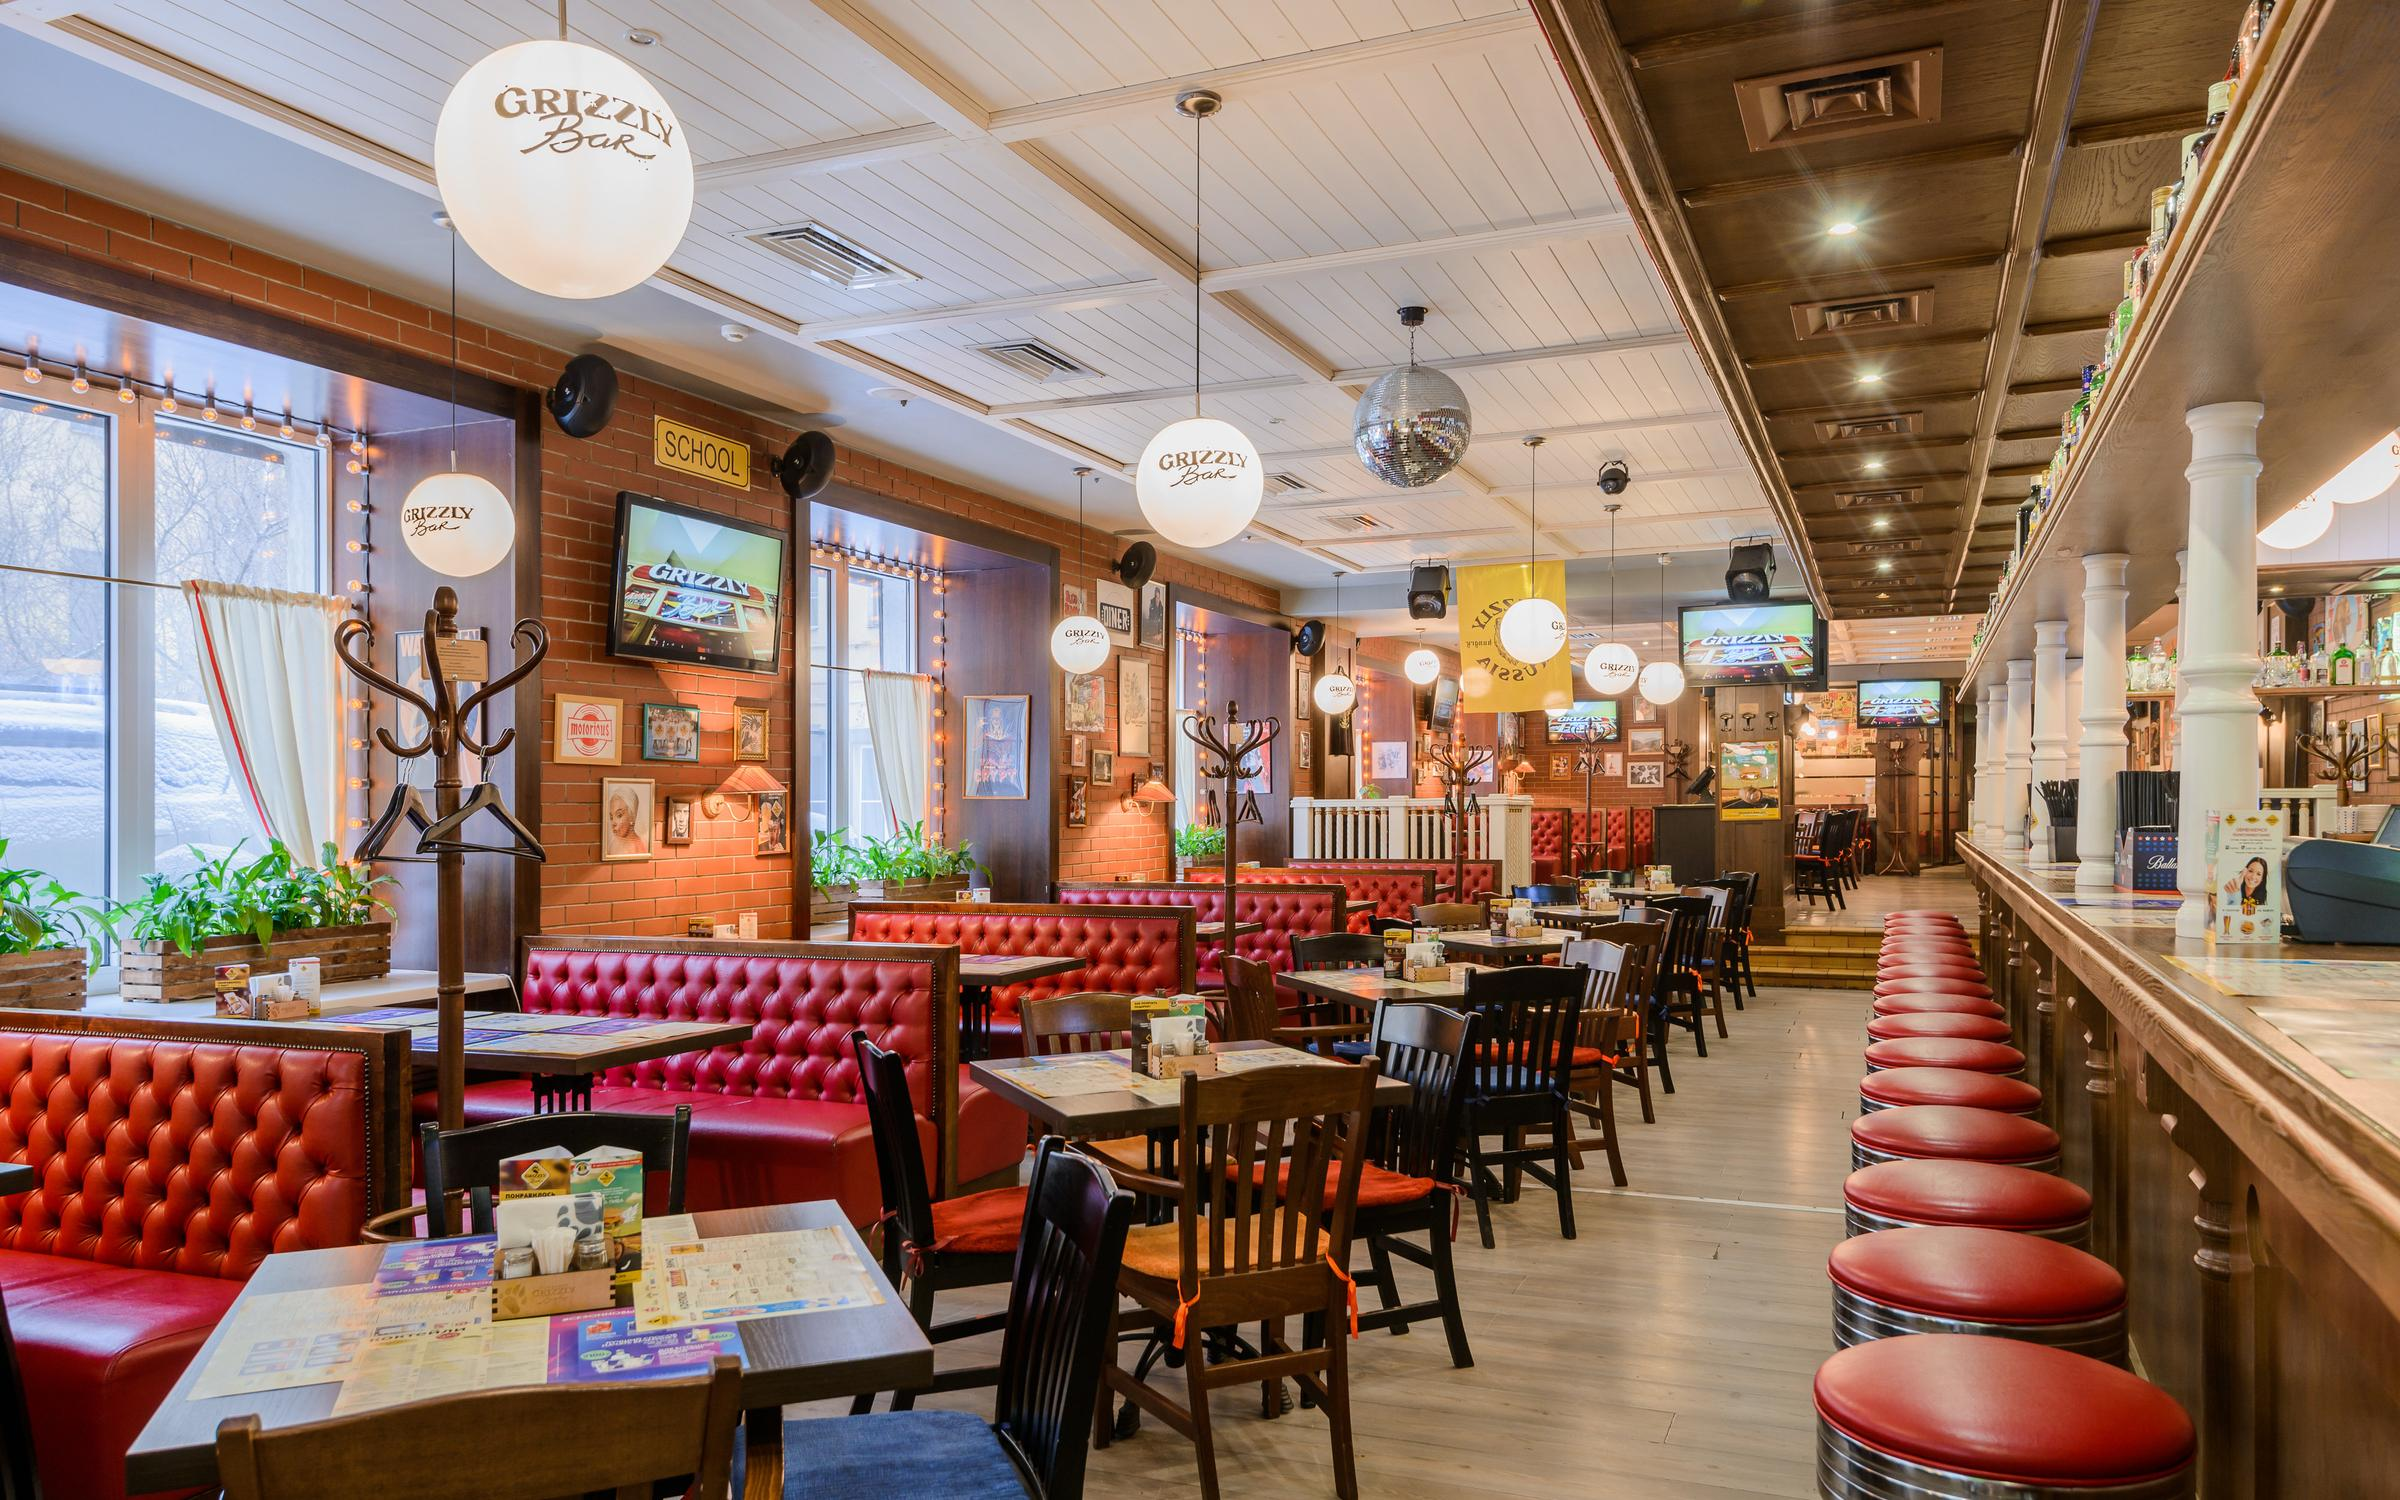 фотография Grizzly Bar steaks & burgers на Невском проспекте